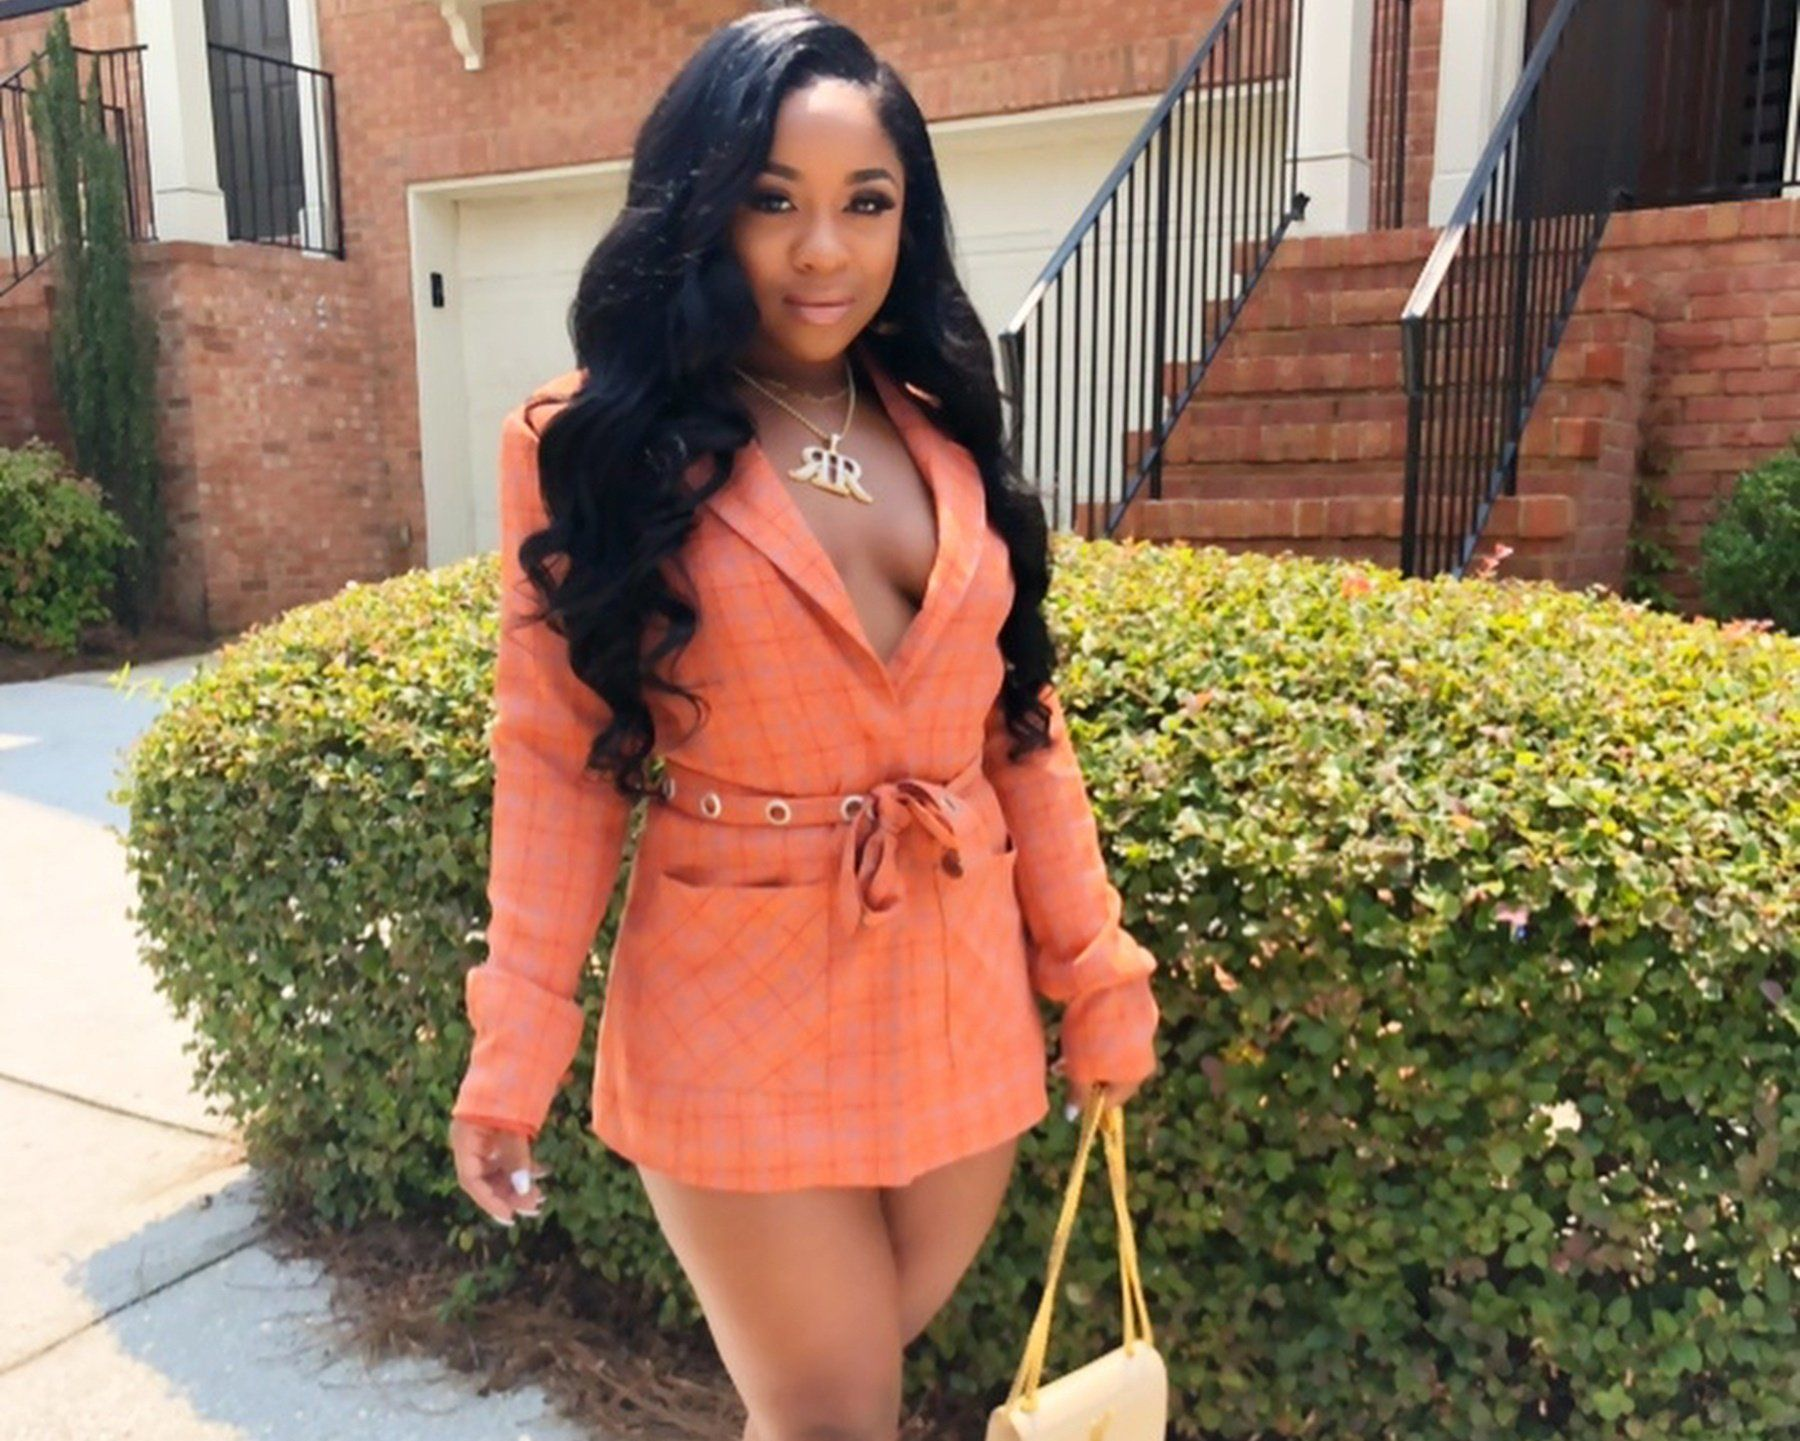 Reginae Carter Has An Important Announcement About Acting - Her Movie, 'Pride & Prejudice: Atlanta' Premiers On June 1st